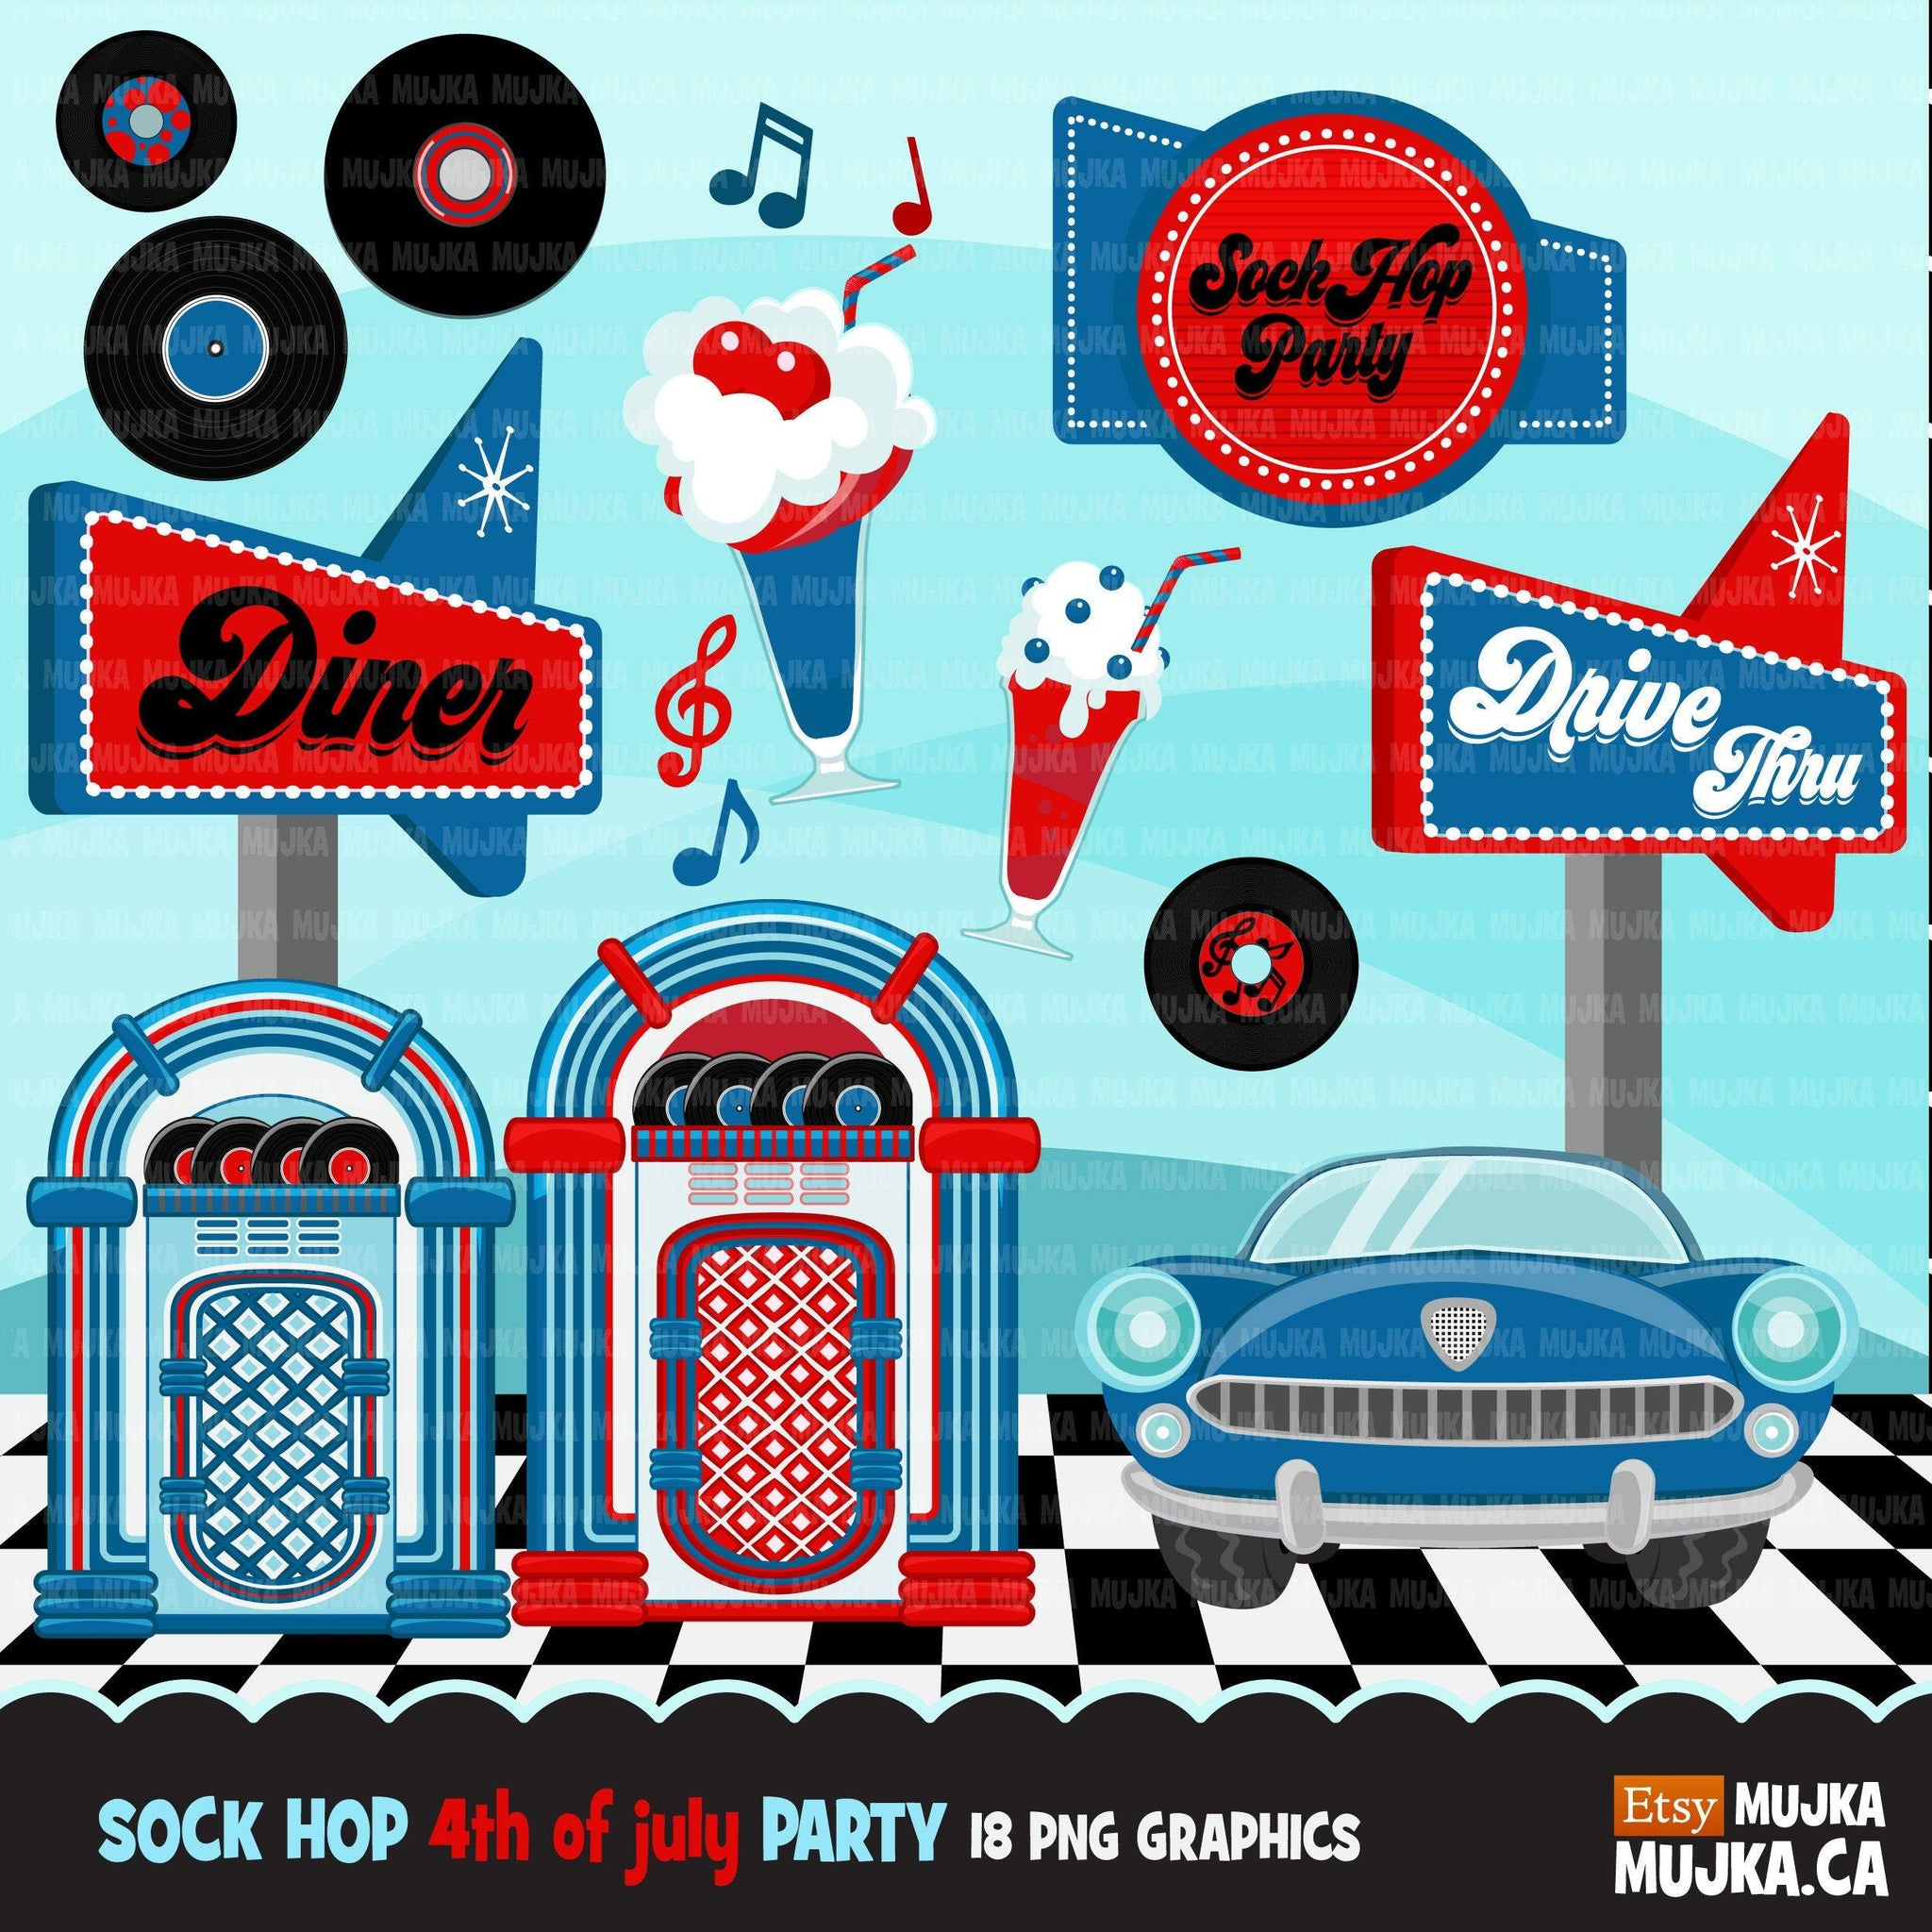 4th of July Sock Hop Party Clipart, 50's retro diner graphics